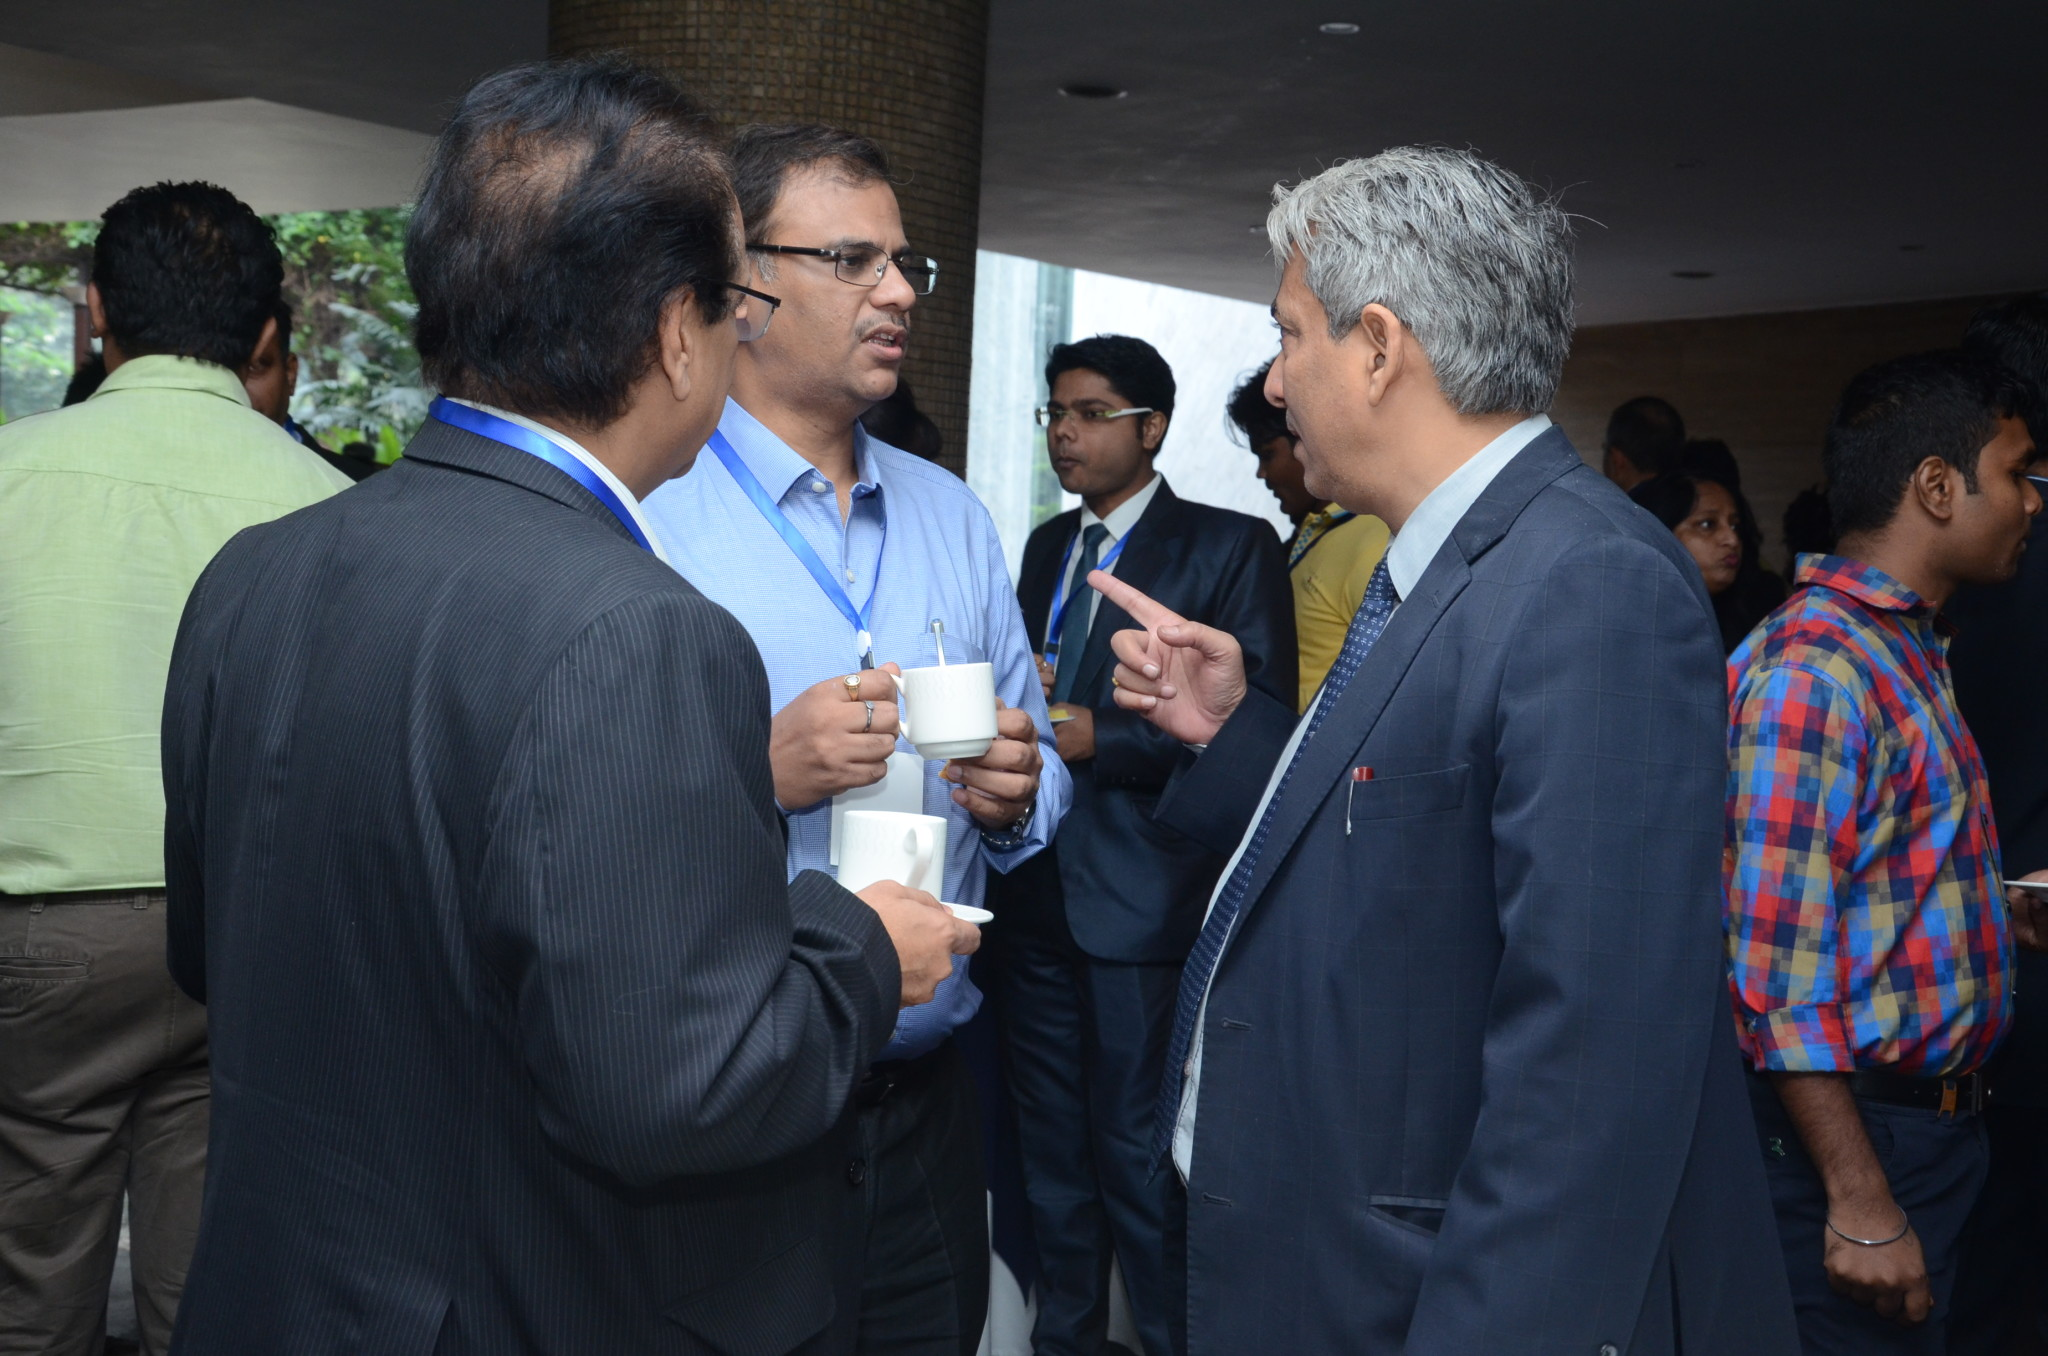 Teacoffee Networking